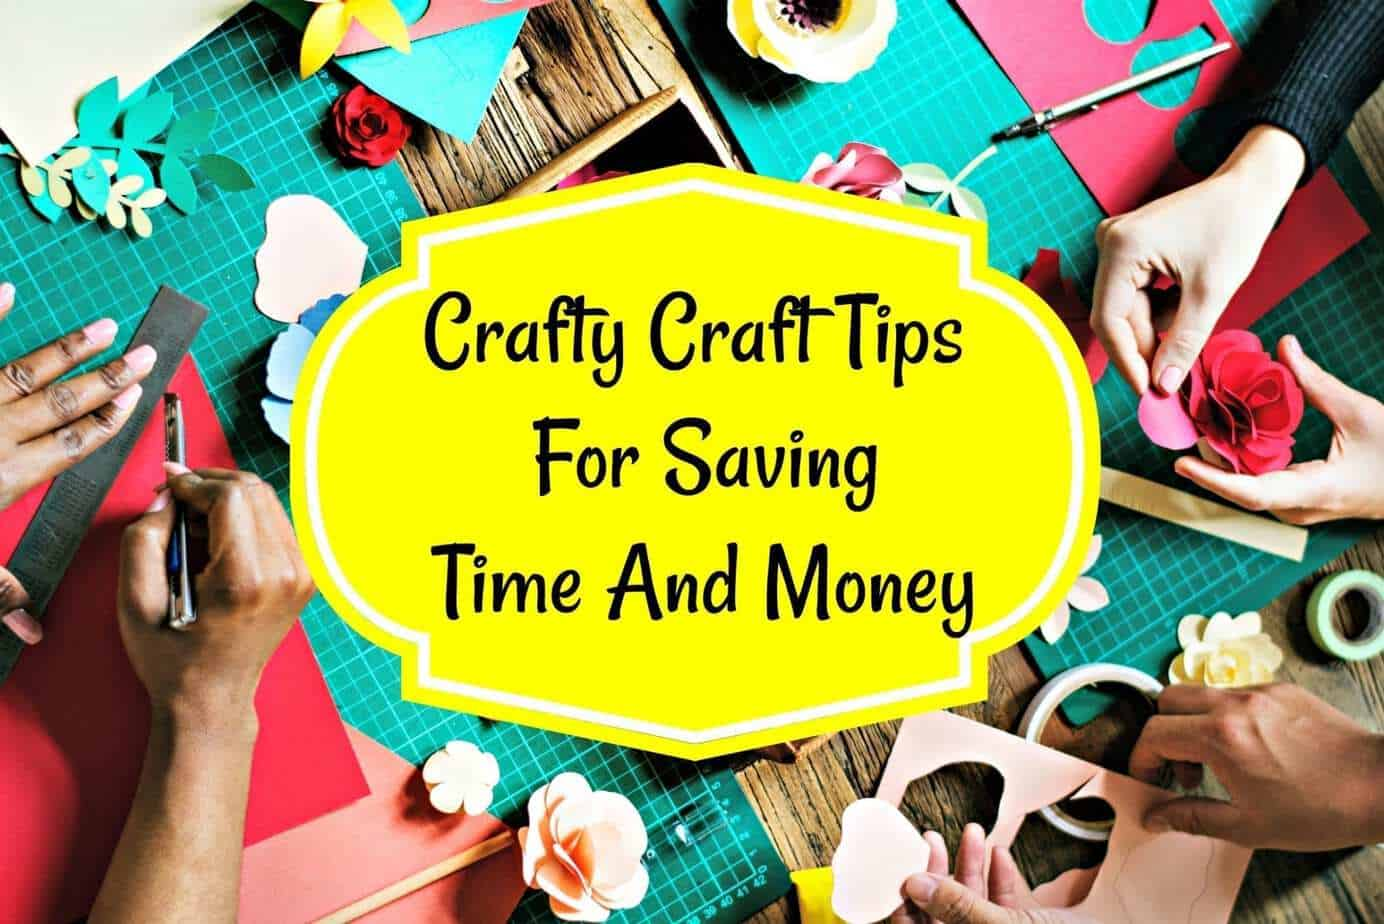 Crafty Craft Tips For Saving Time And Money #HandyHints